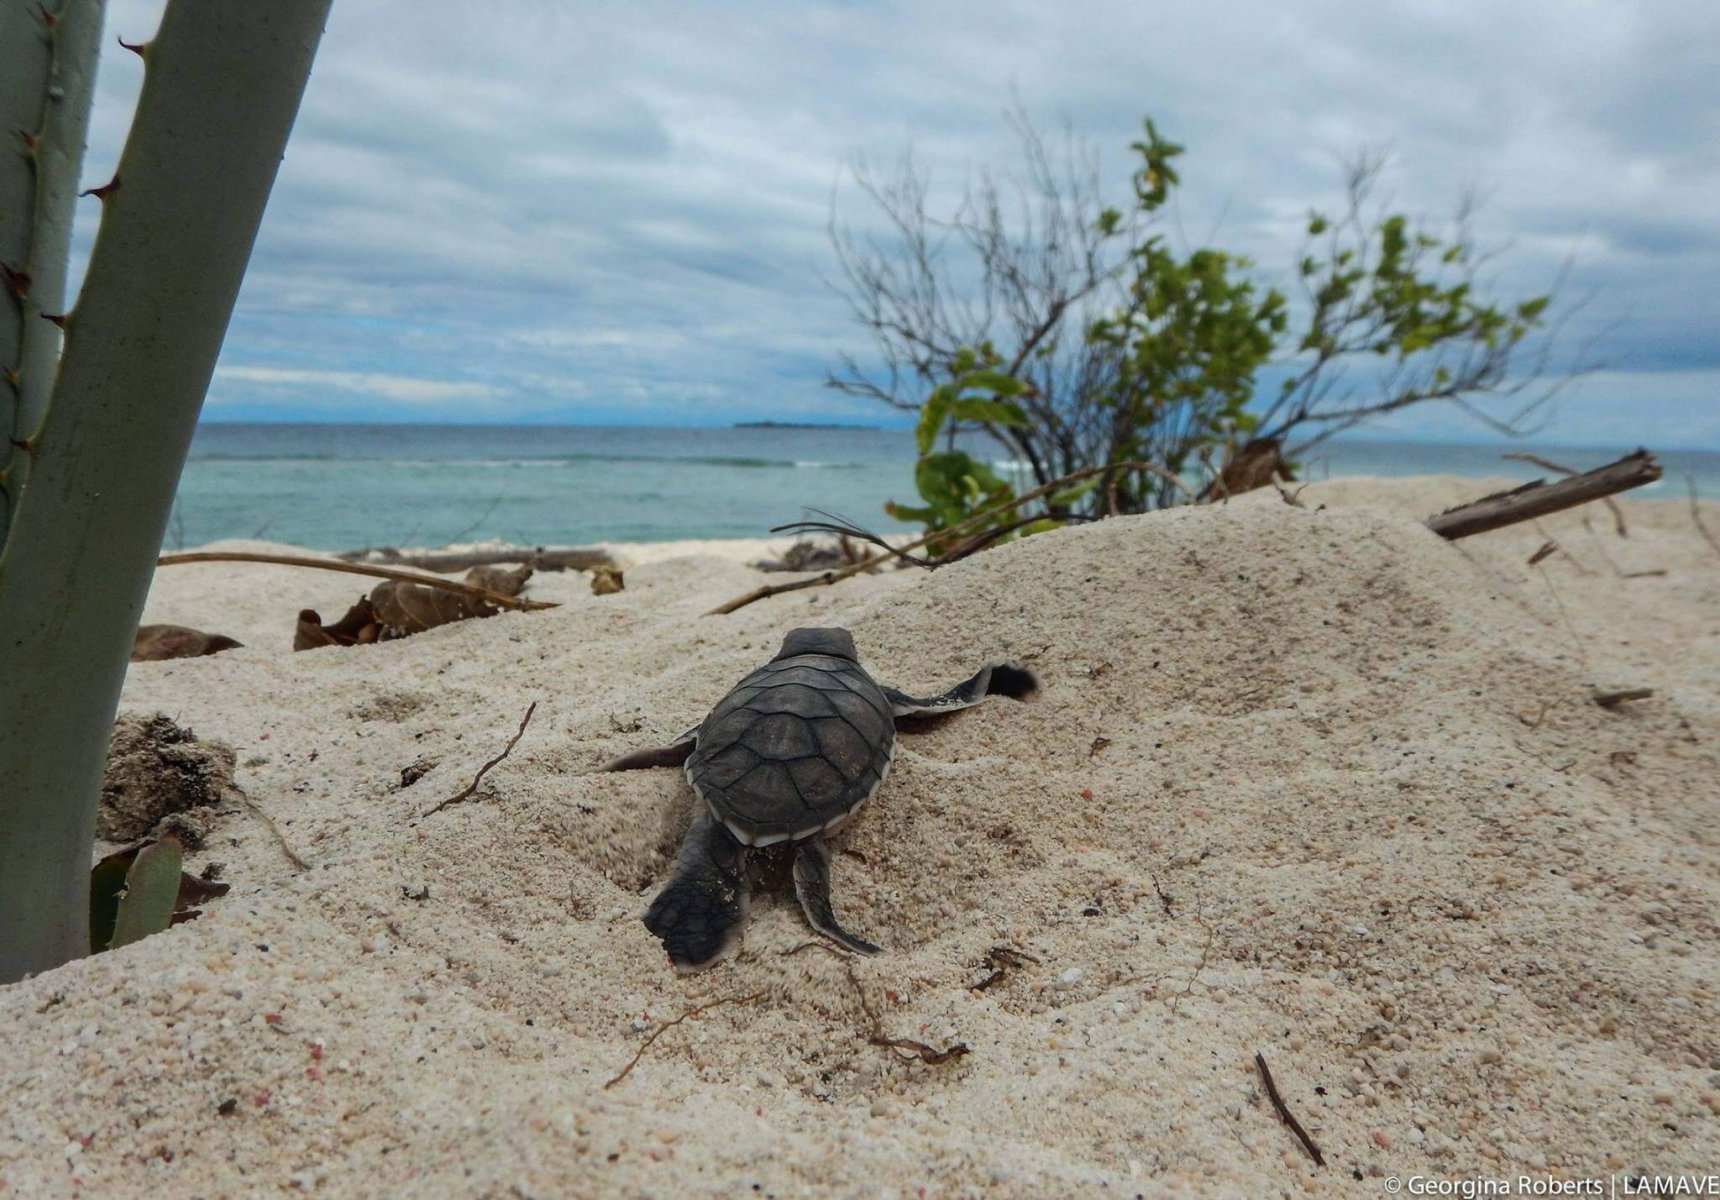 A turtle hatchling on a beach in Palawan, Philippines © Georgina Roberts/LAMAVE